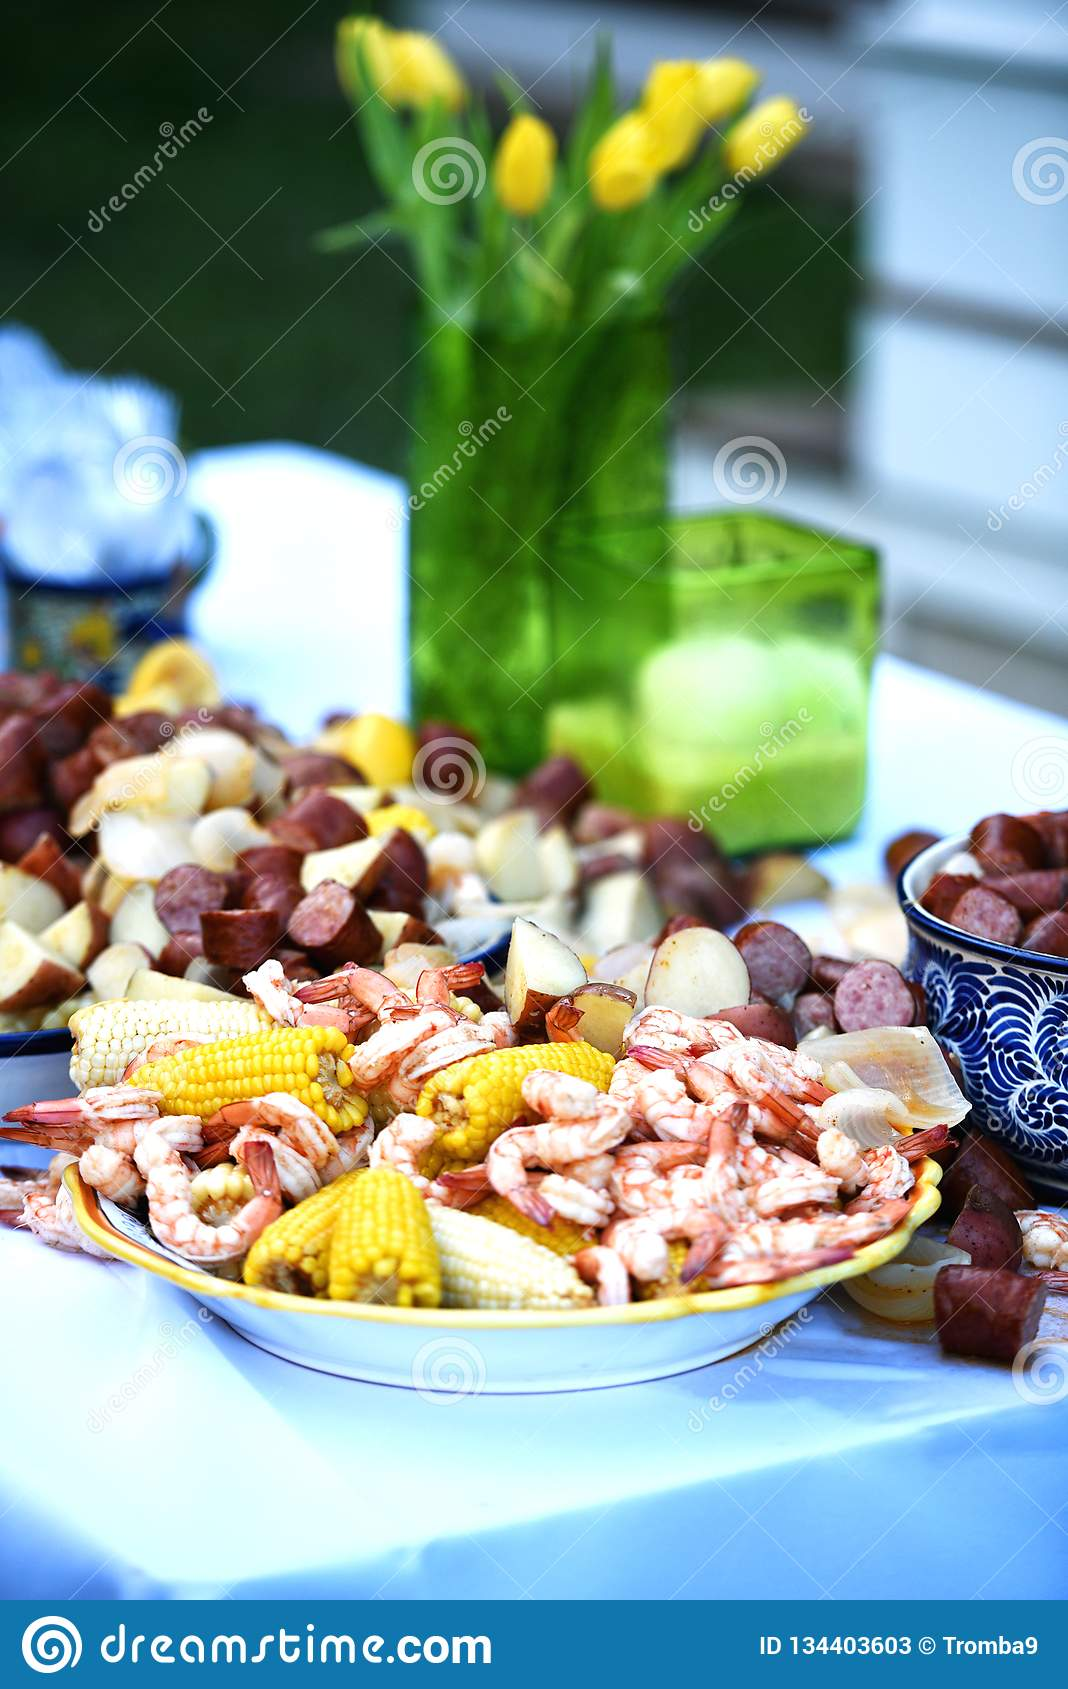 Vibrant color with yellow flowers and a delicious low country shrimp boil.